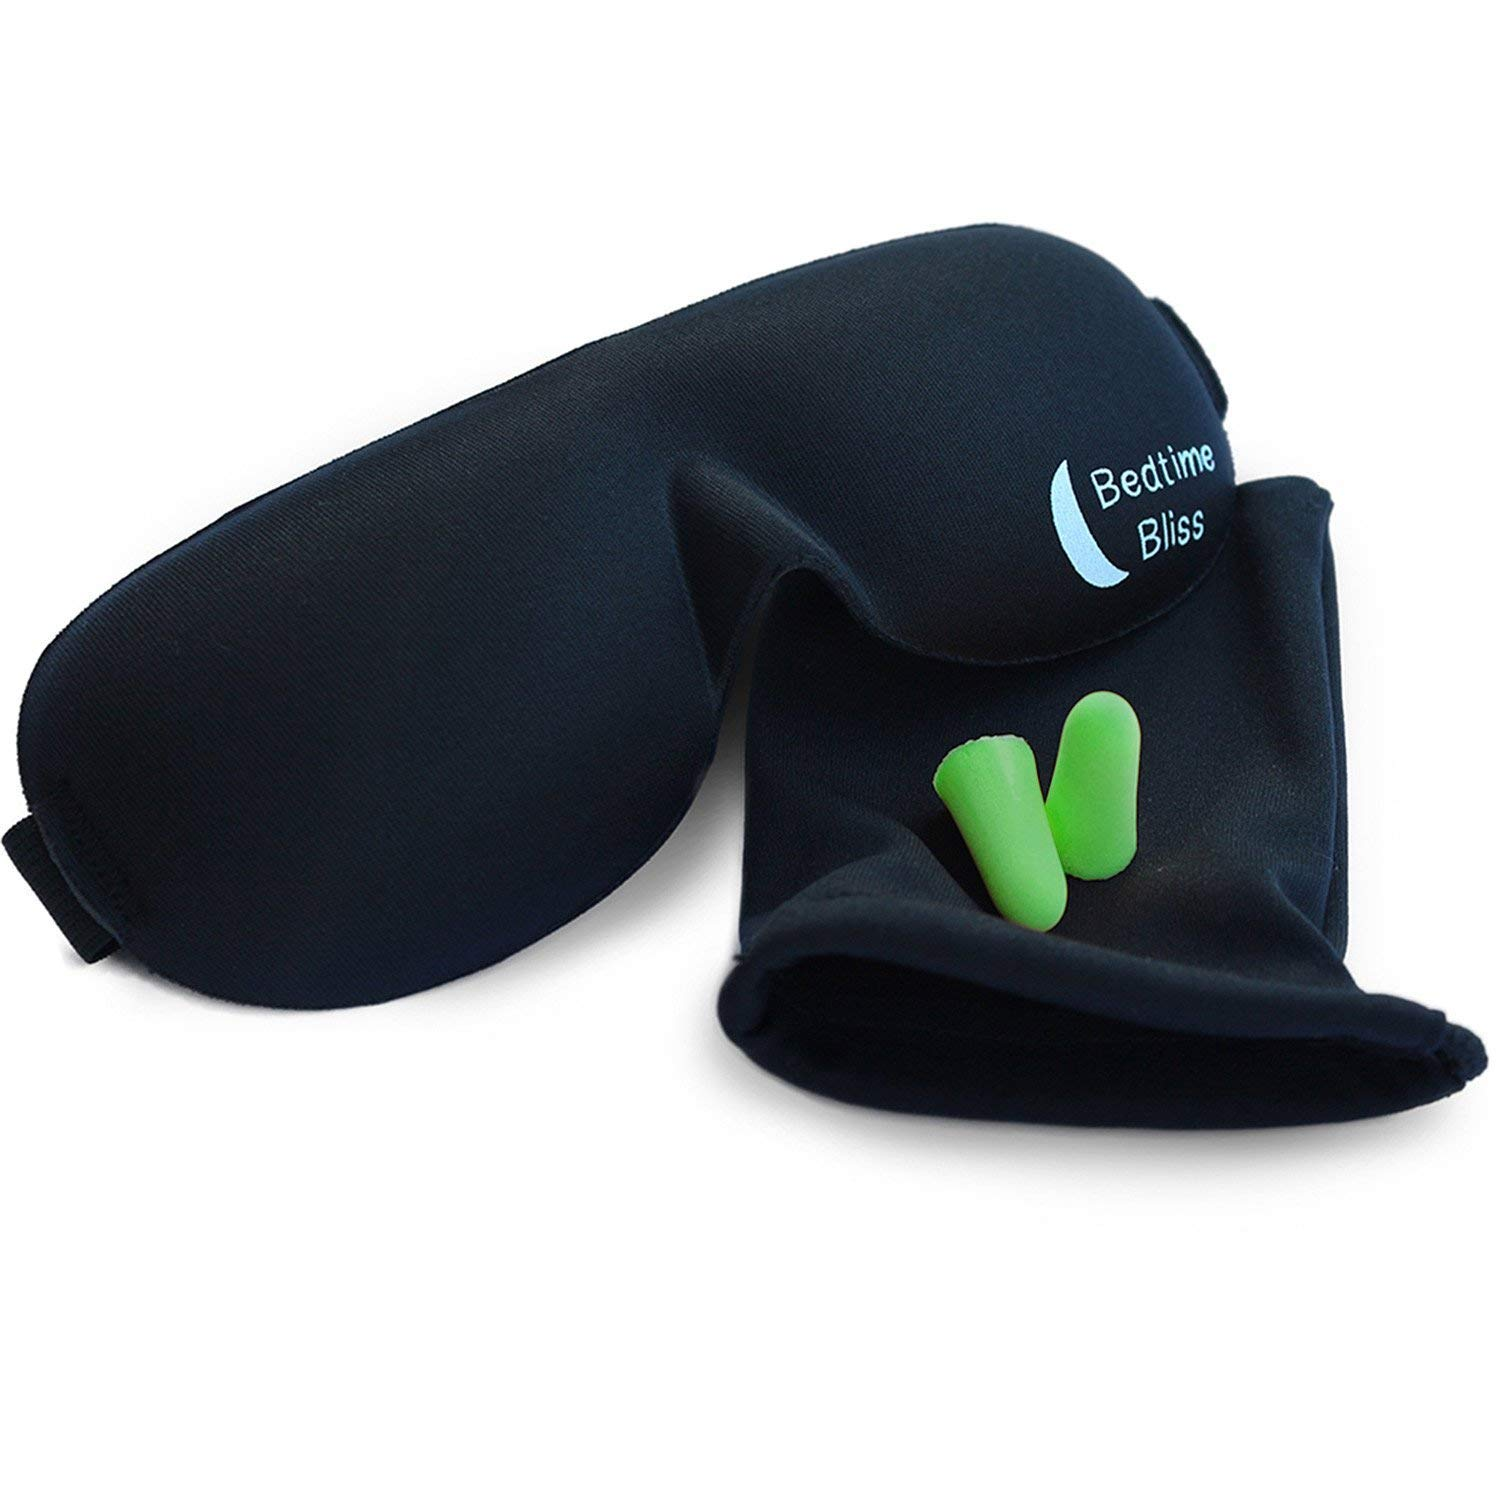 Bedtime Bliss – Comfortable Sleep Mask Set Carry Pouch and Ear Plugs Included